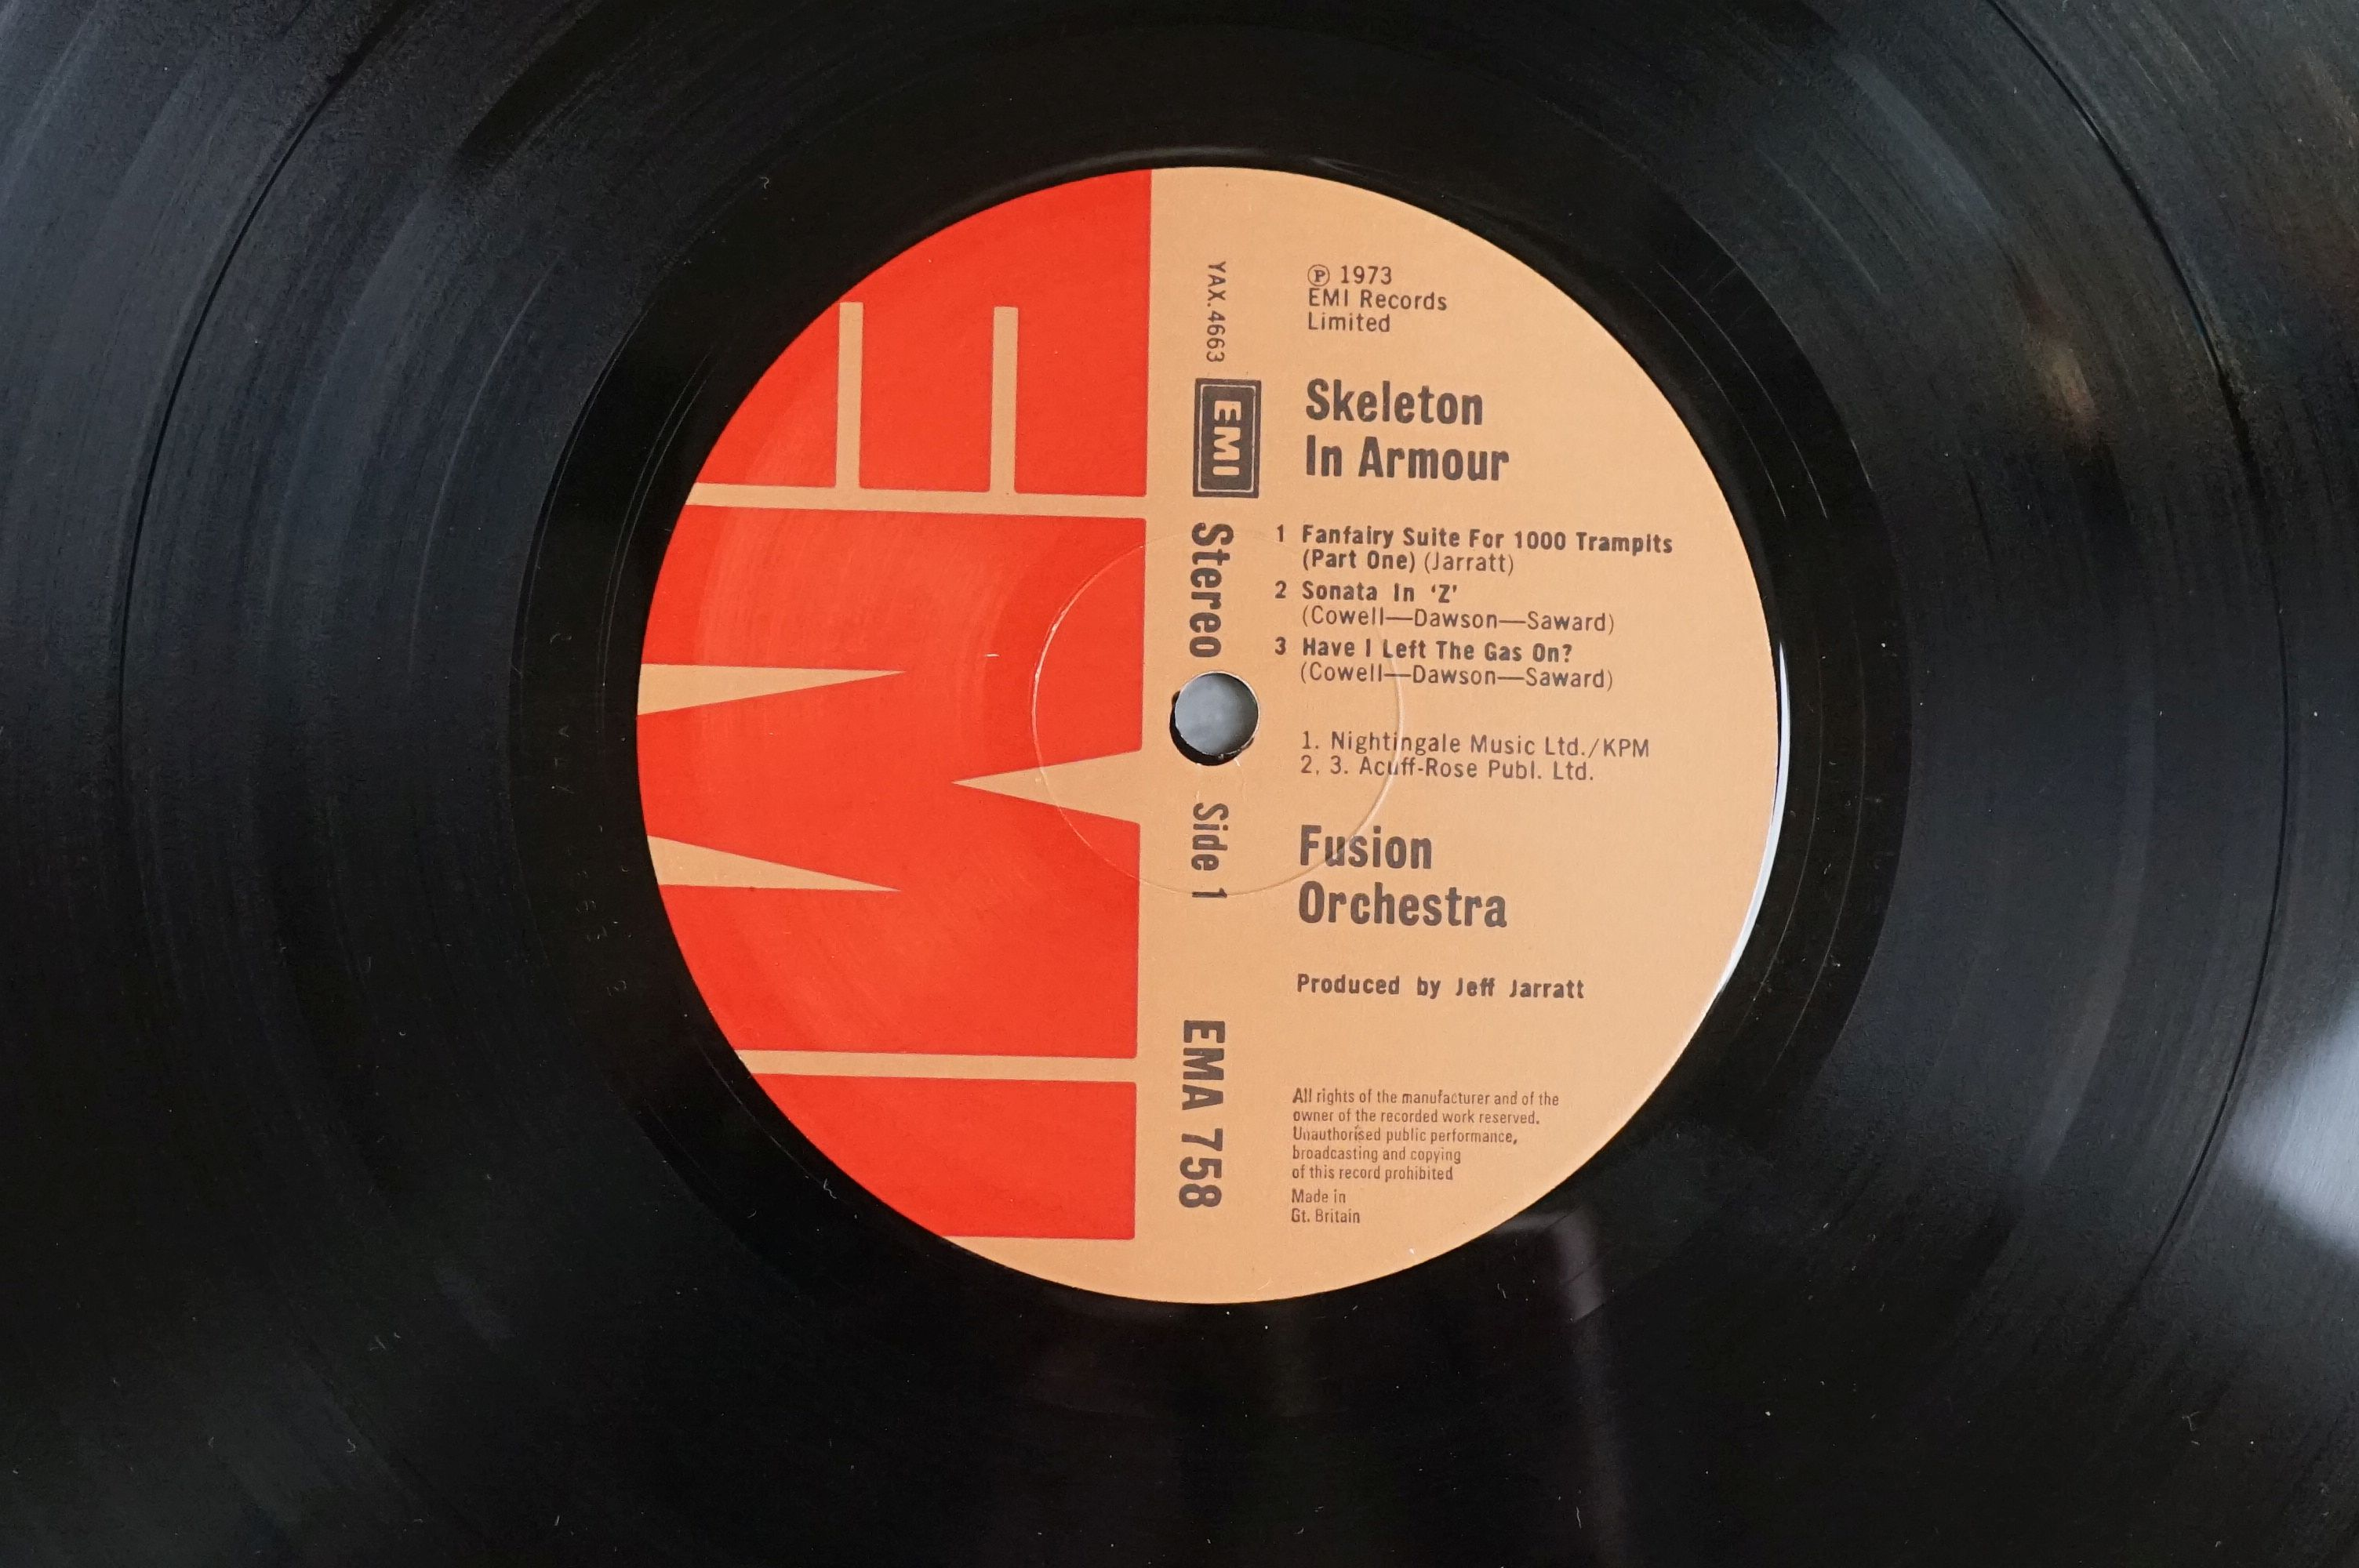 Vinyl - Fusion Orchestra Skeleton In Armour LP EMA758, sleeve vg+ with buffering to corners, - Image 5 of 6